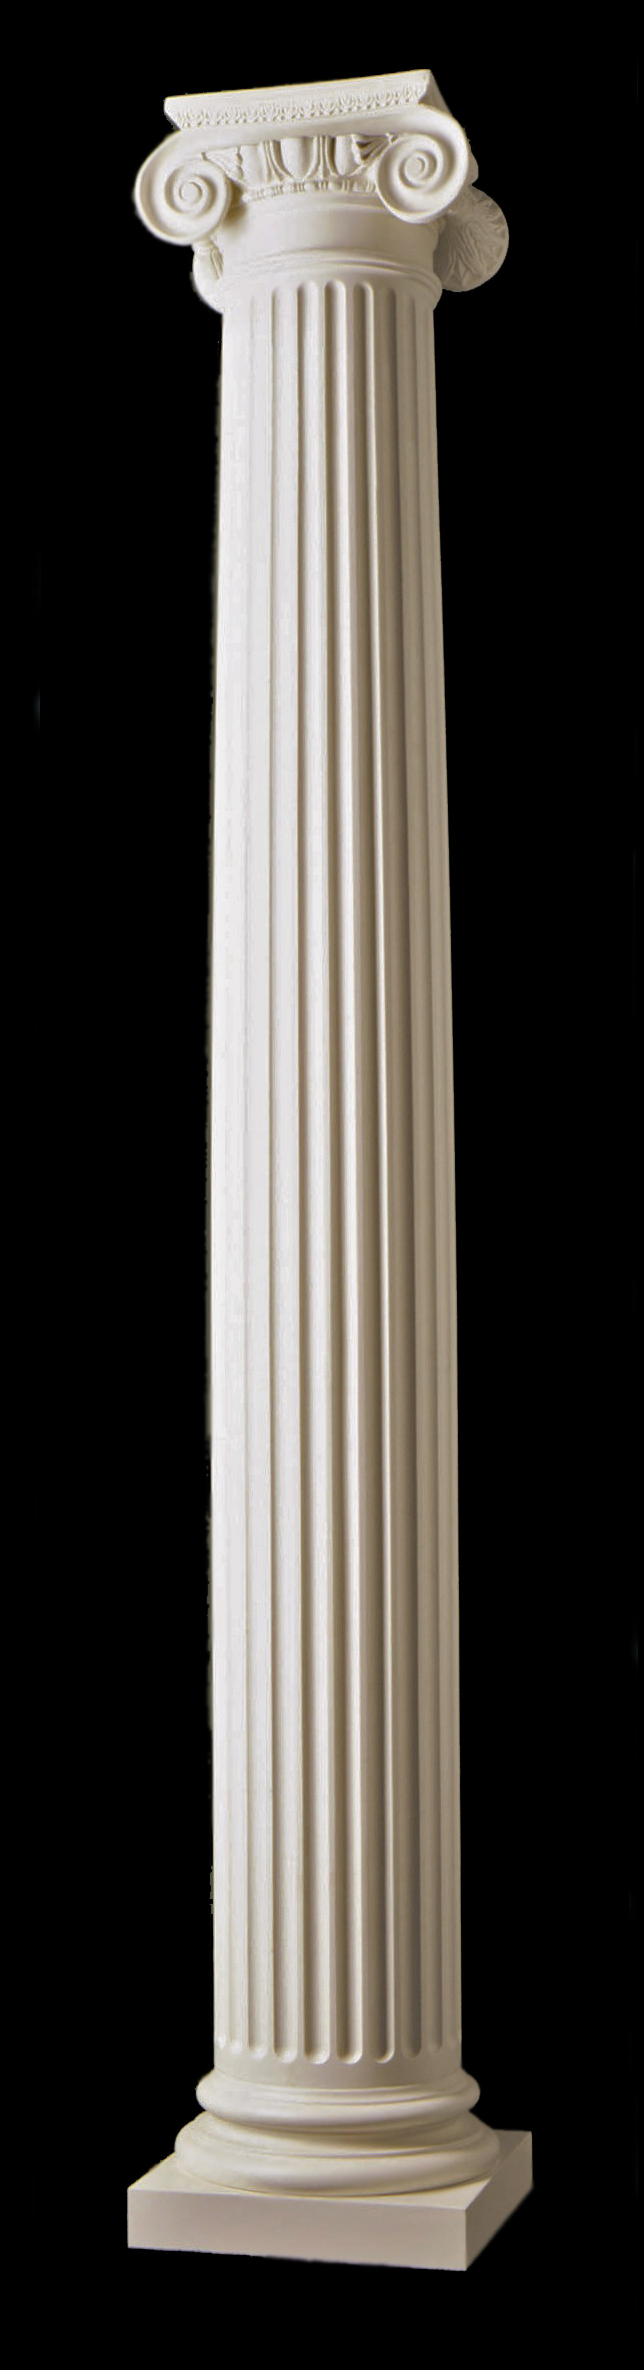 Beautiful house column designs by chadsworth columns for Columns designs